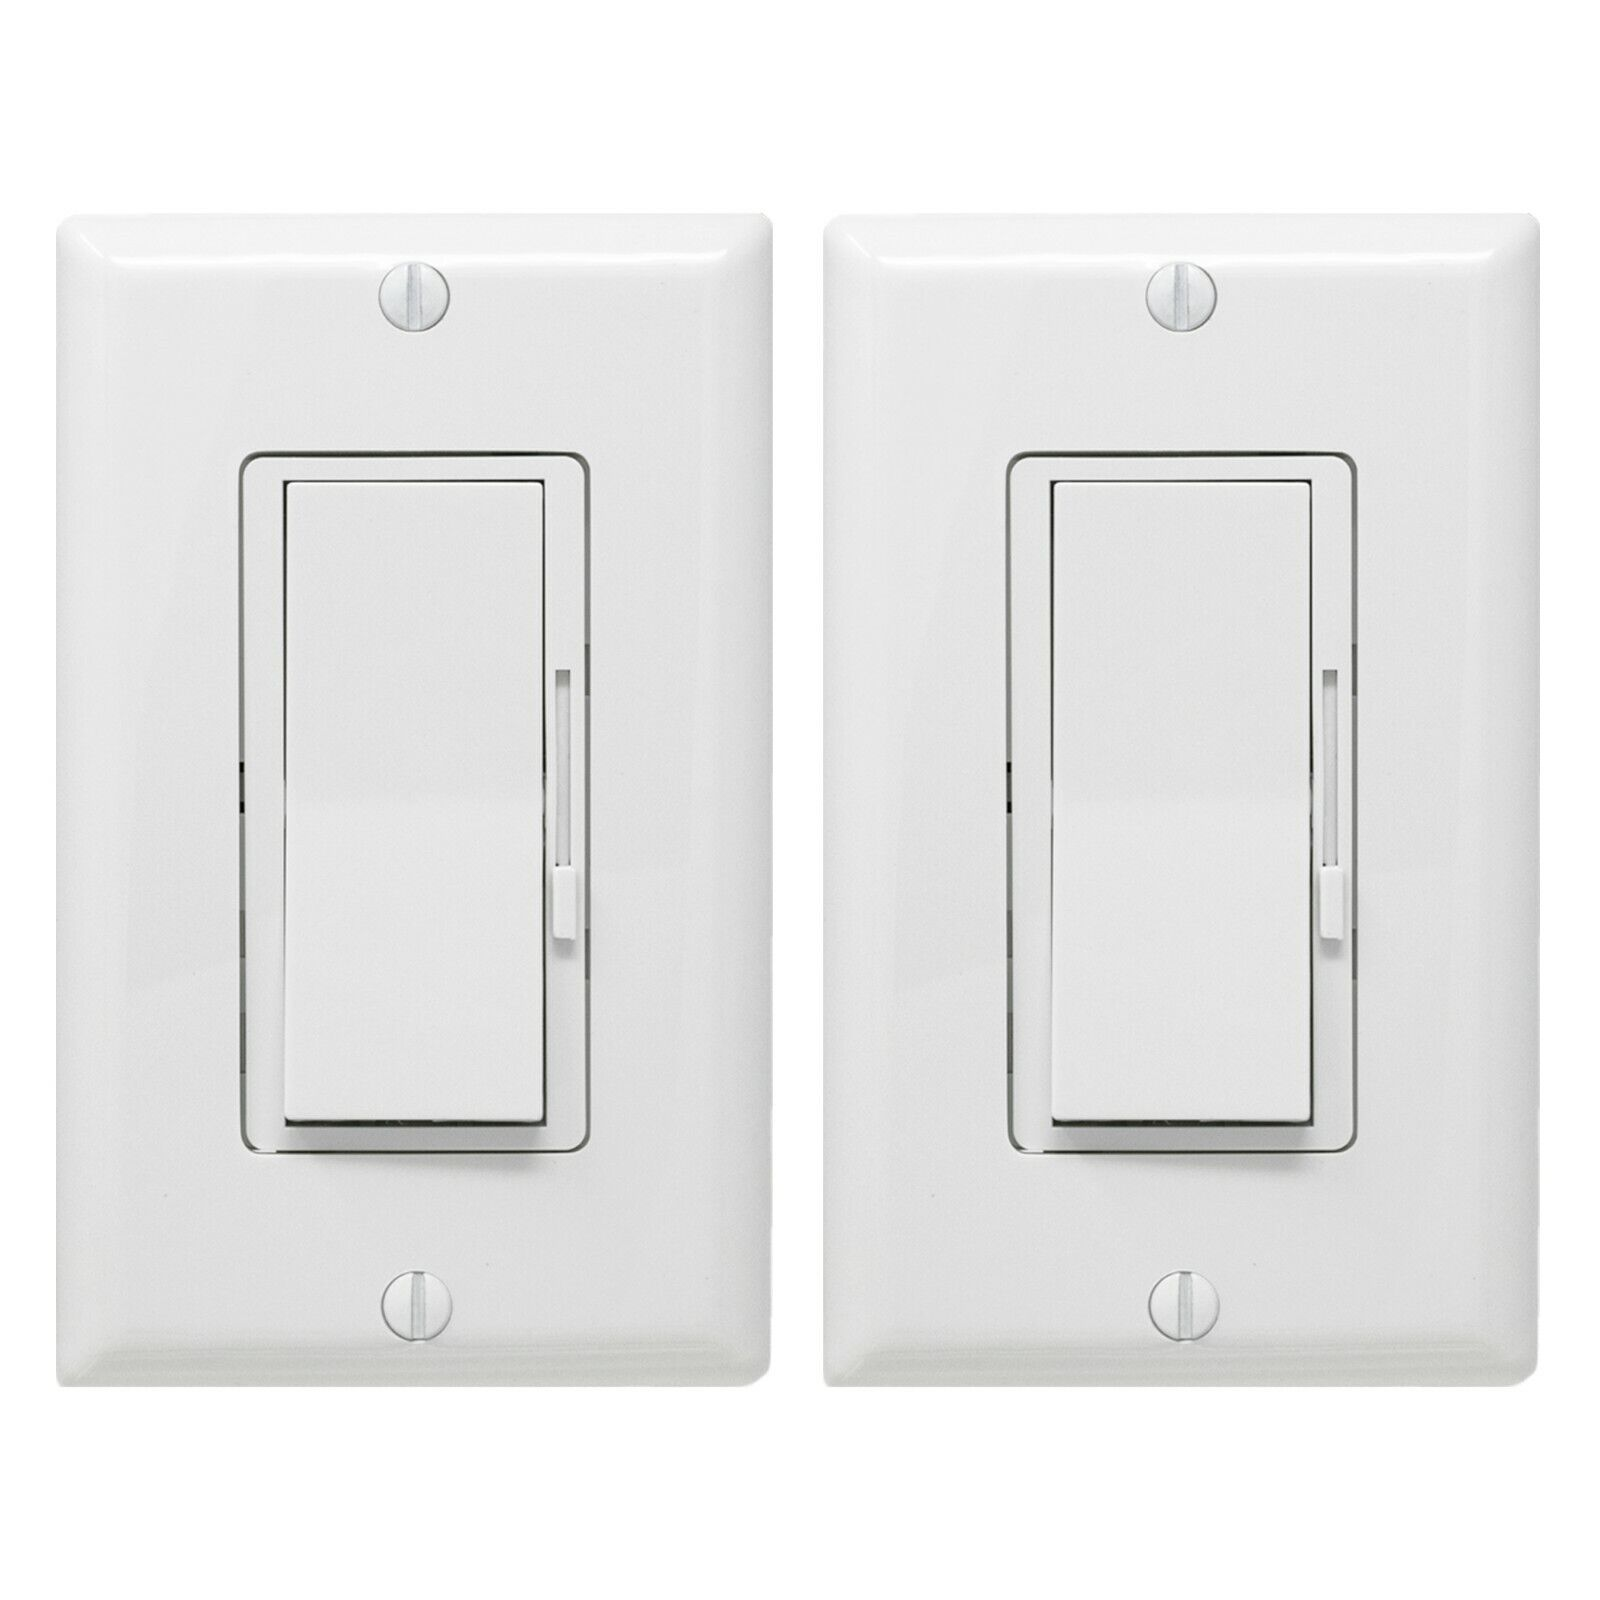 Dimmer Light Switch- Single Pole or 3-Way for LED /Incandes